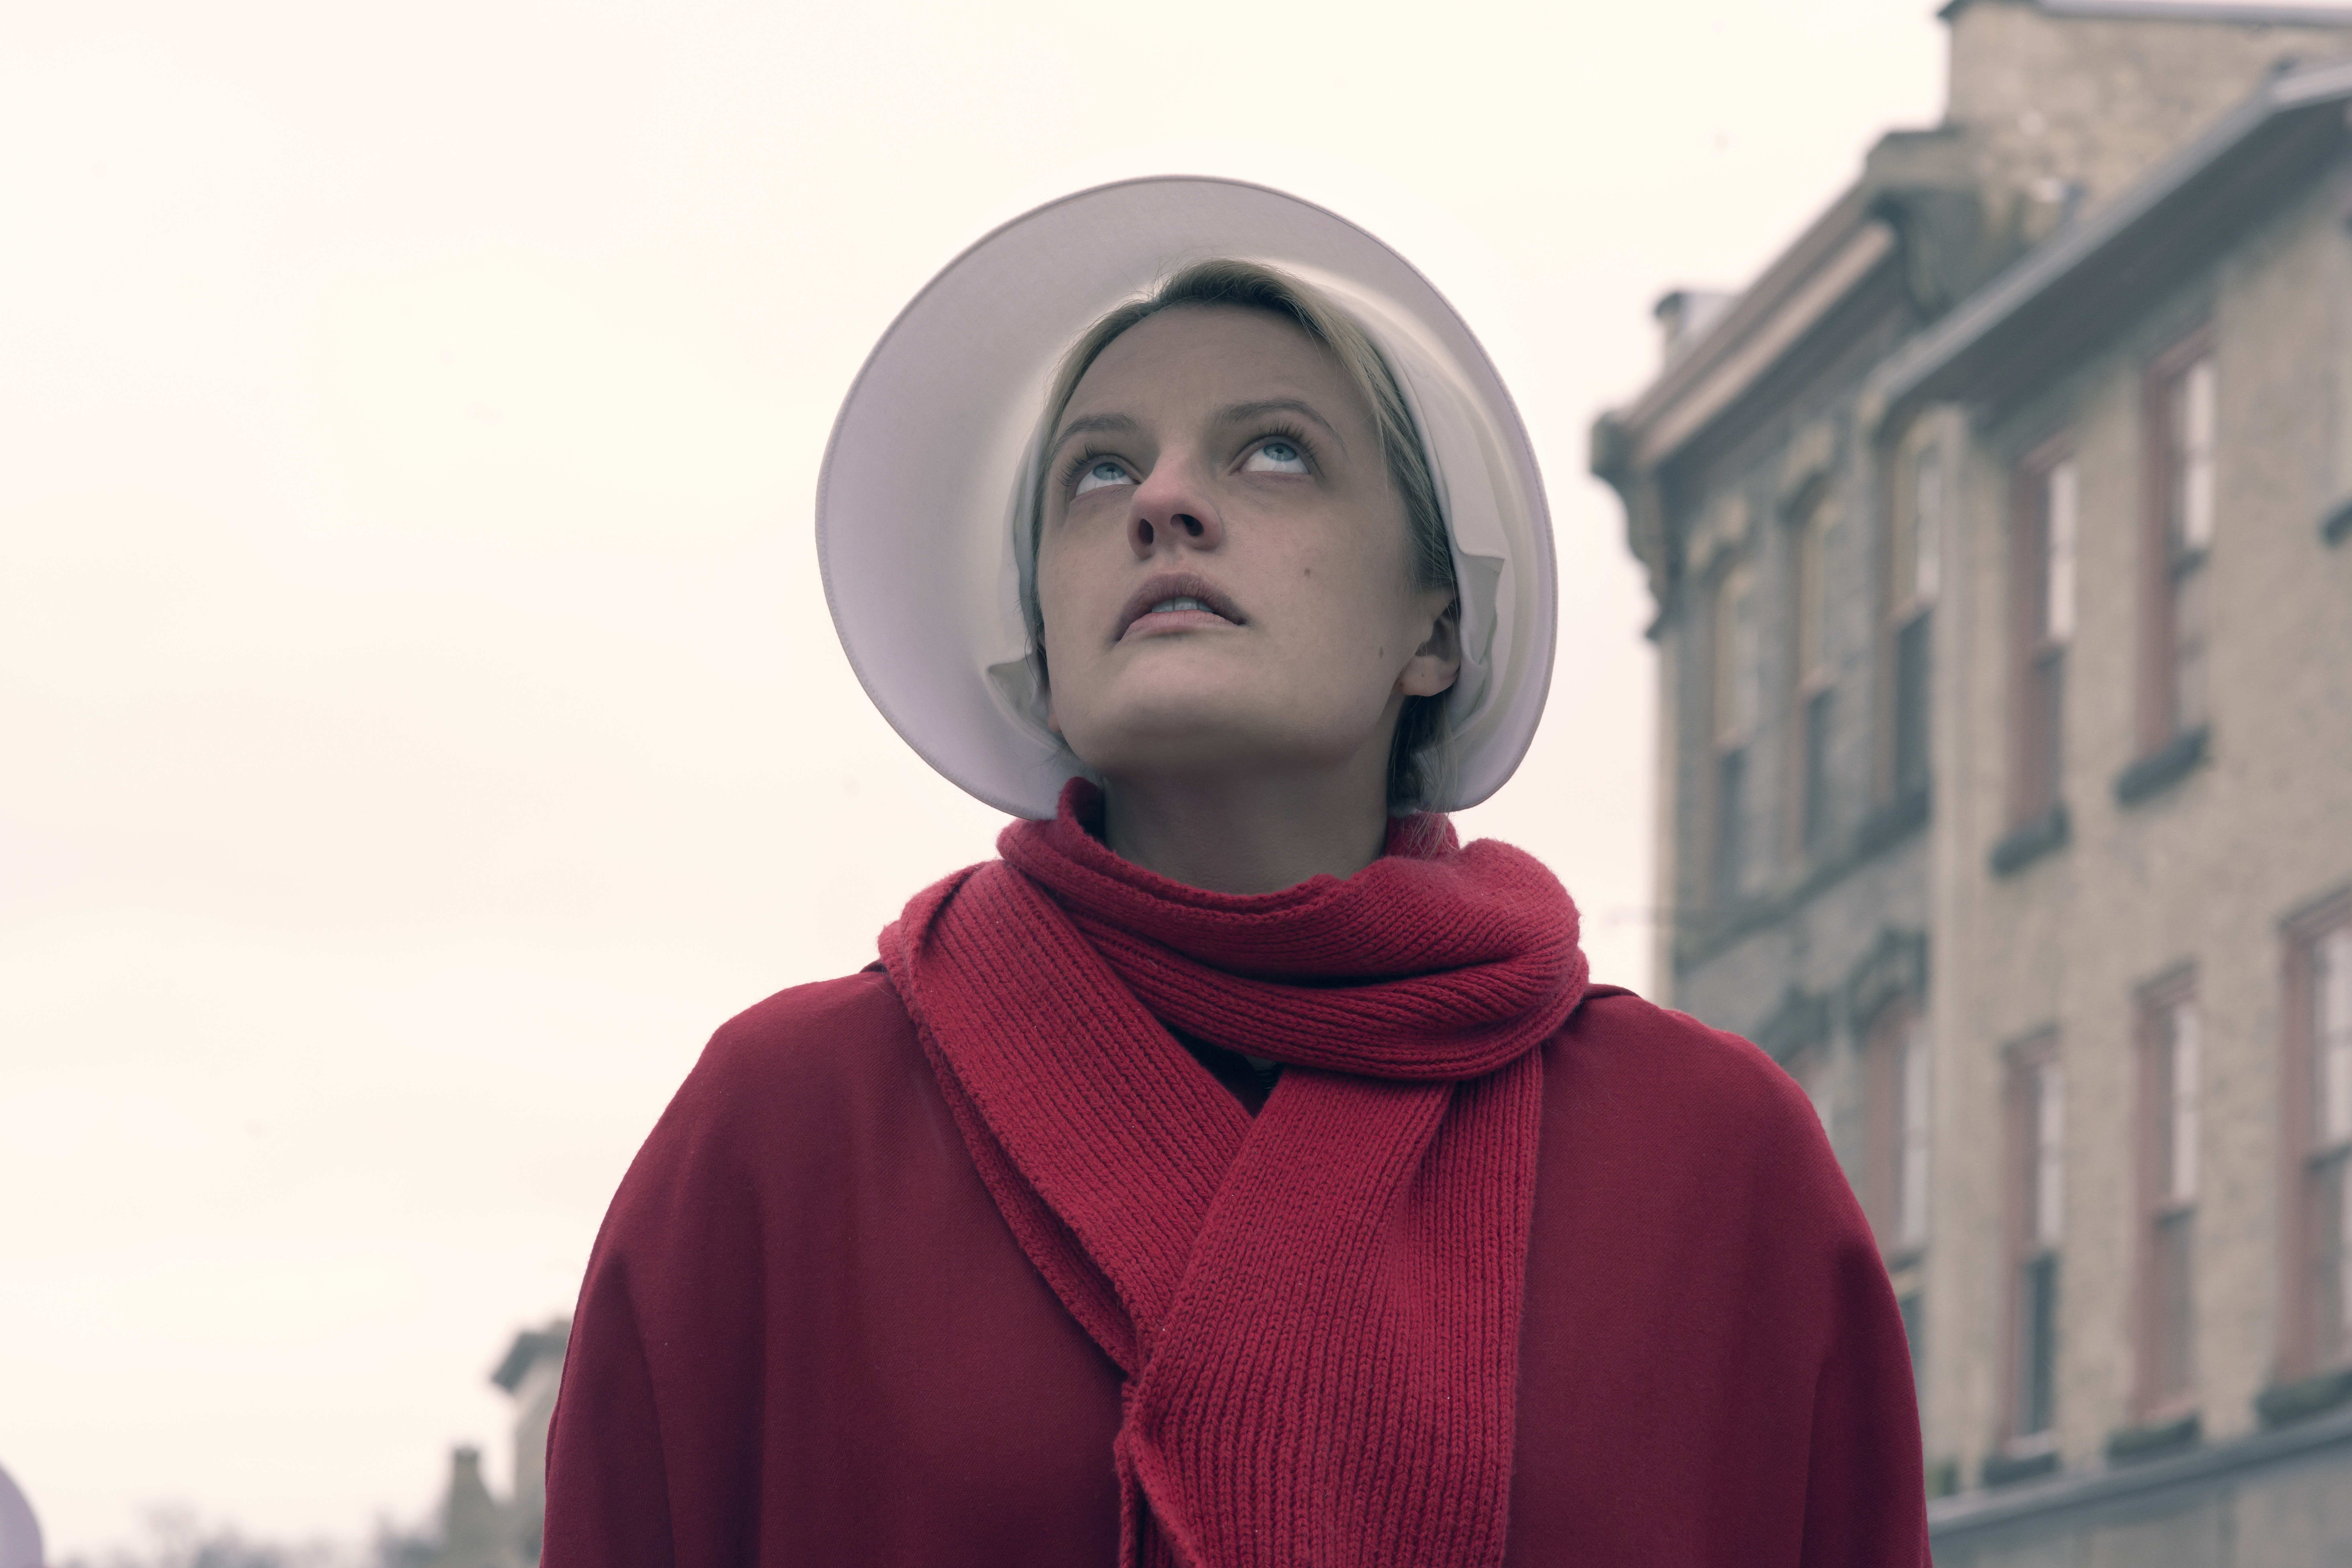 The Handmaid's Tale Season 3: All Songs From the Soundtrack